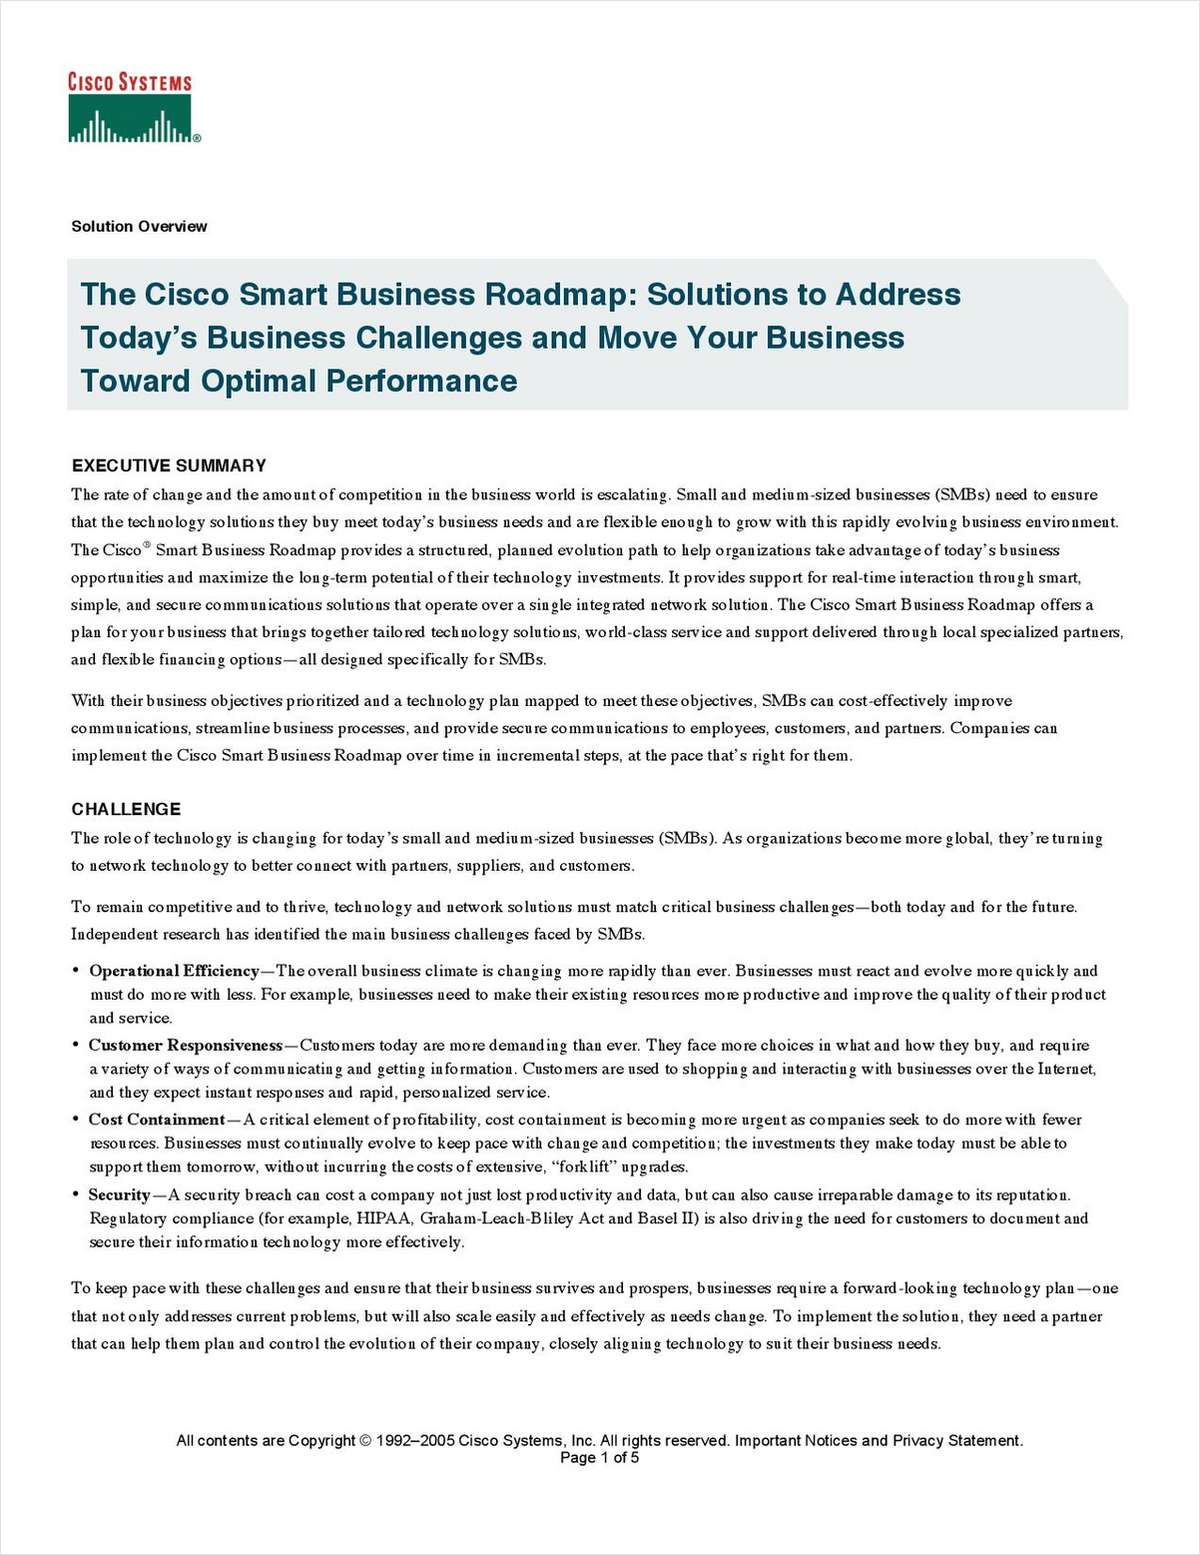 The Cisco Smart Business Roadmap: Solutions to Address Today's Business Challenges and Move Your Business Toward Optimal Performance